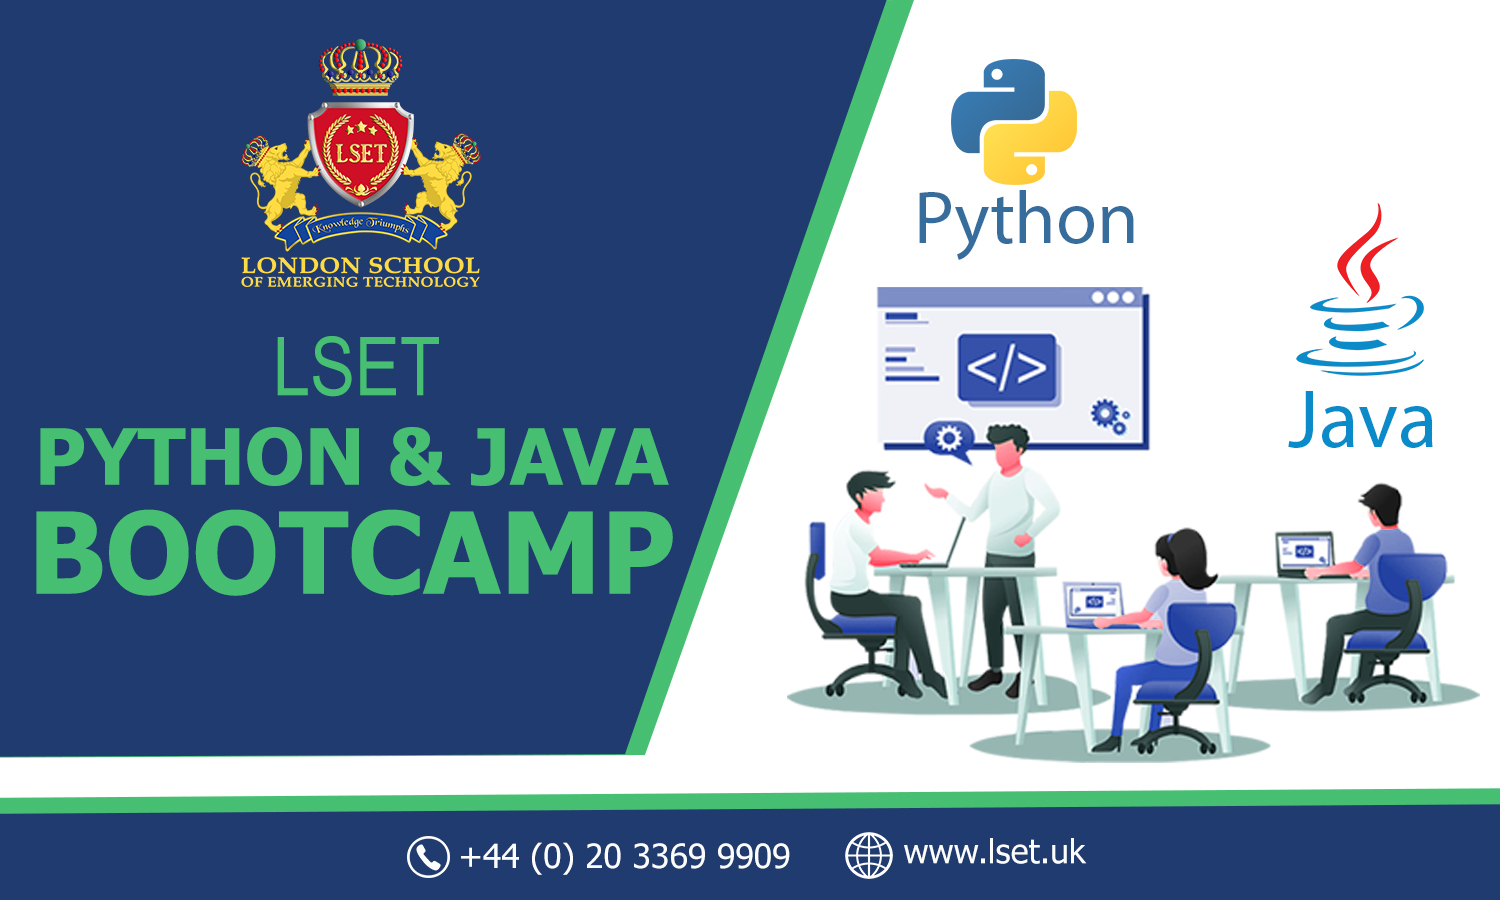 LSET is Coming up with Java and Python Bootcamps 20